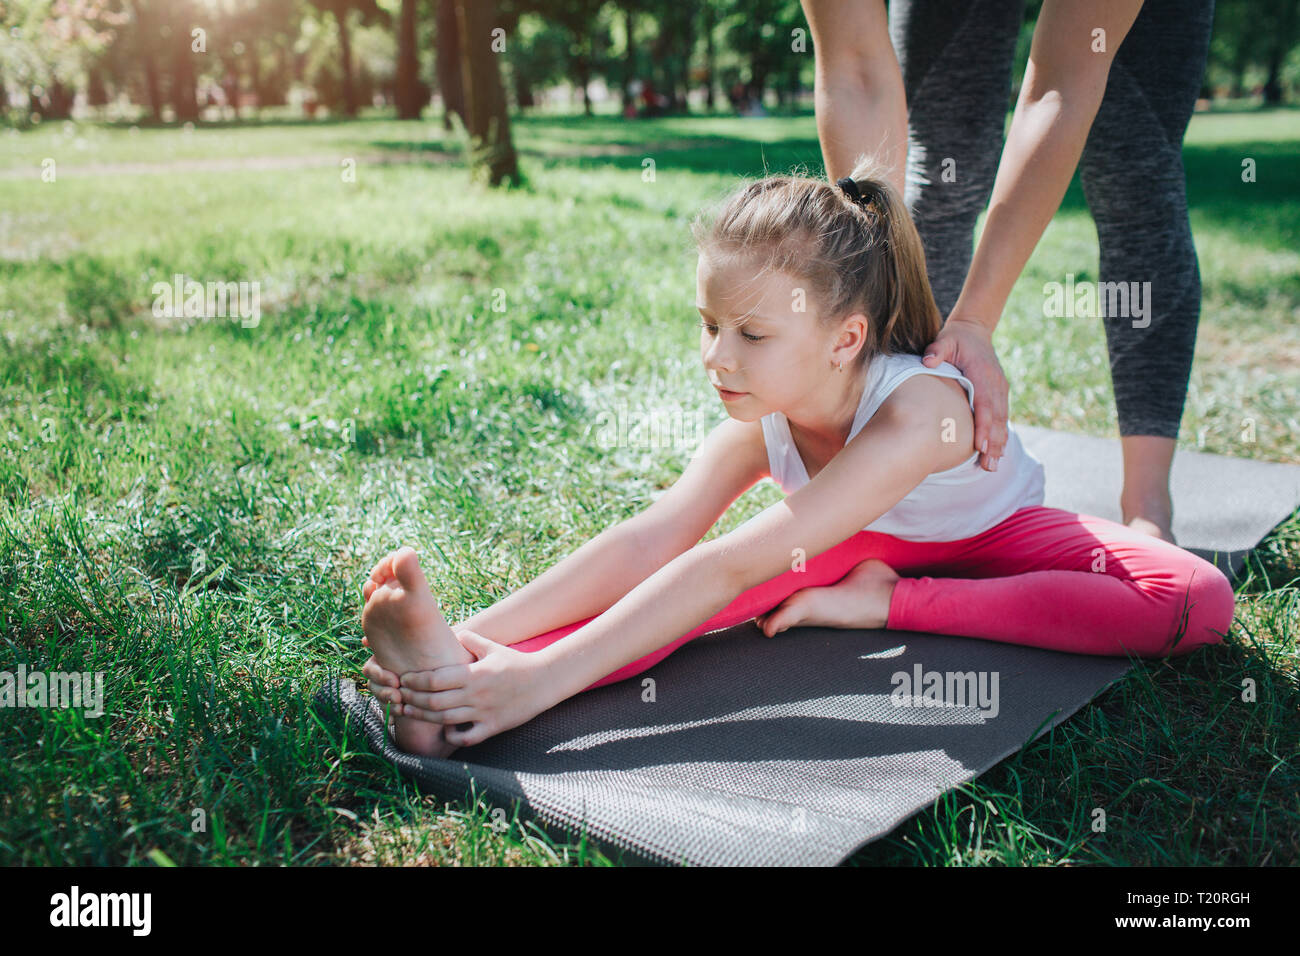 A picture of small girl stratching. Adud woman is helping her to do that right. Girl is keeping her left foot close to right leg. Yoga and Pilates Con - Stock Image